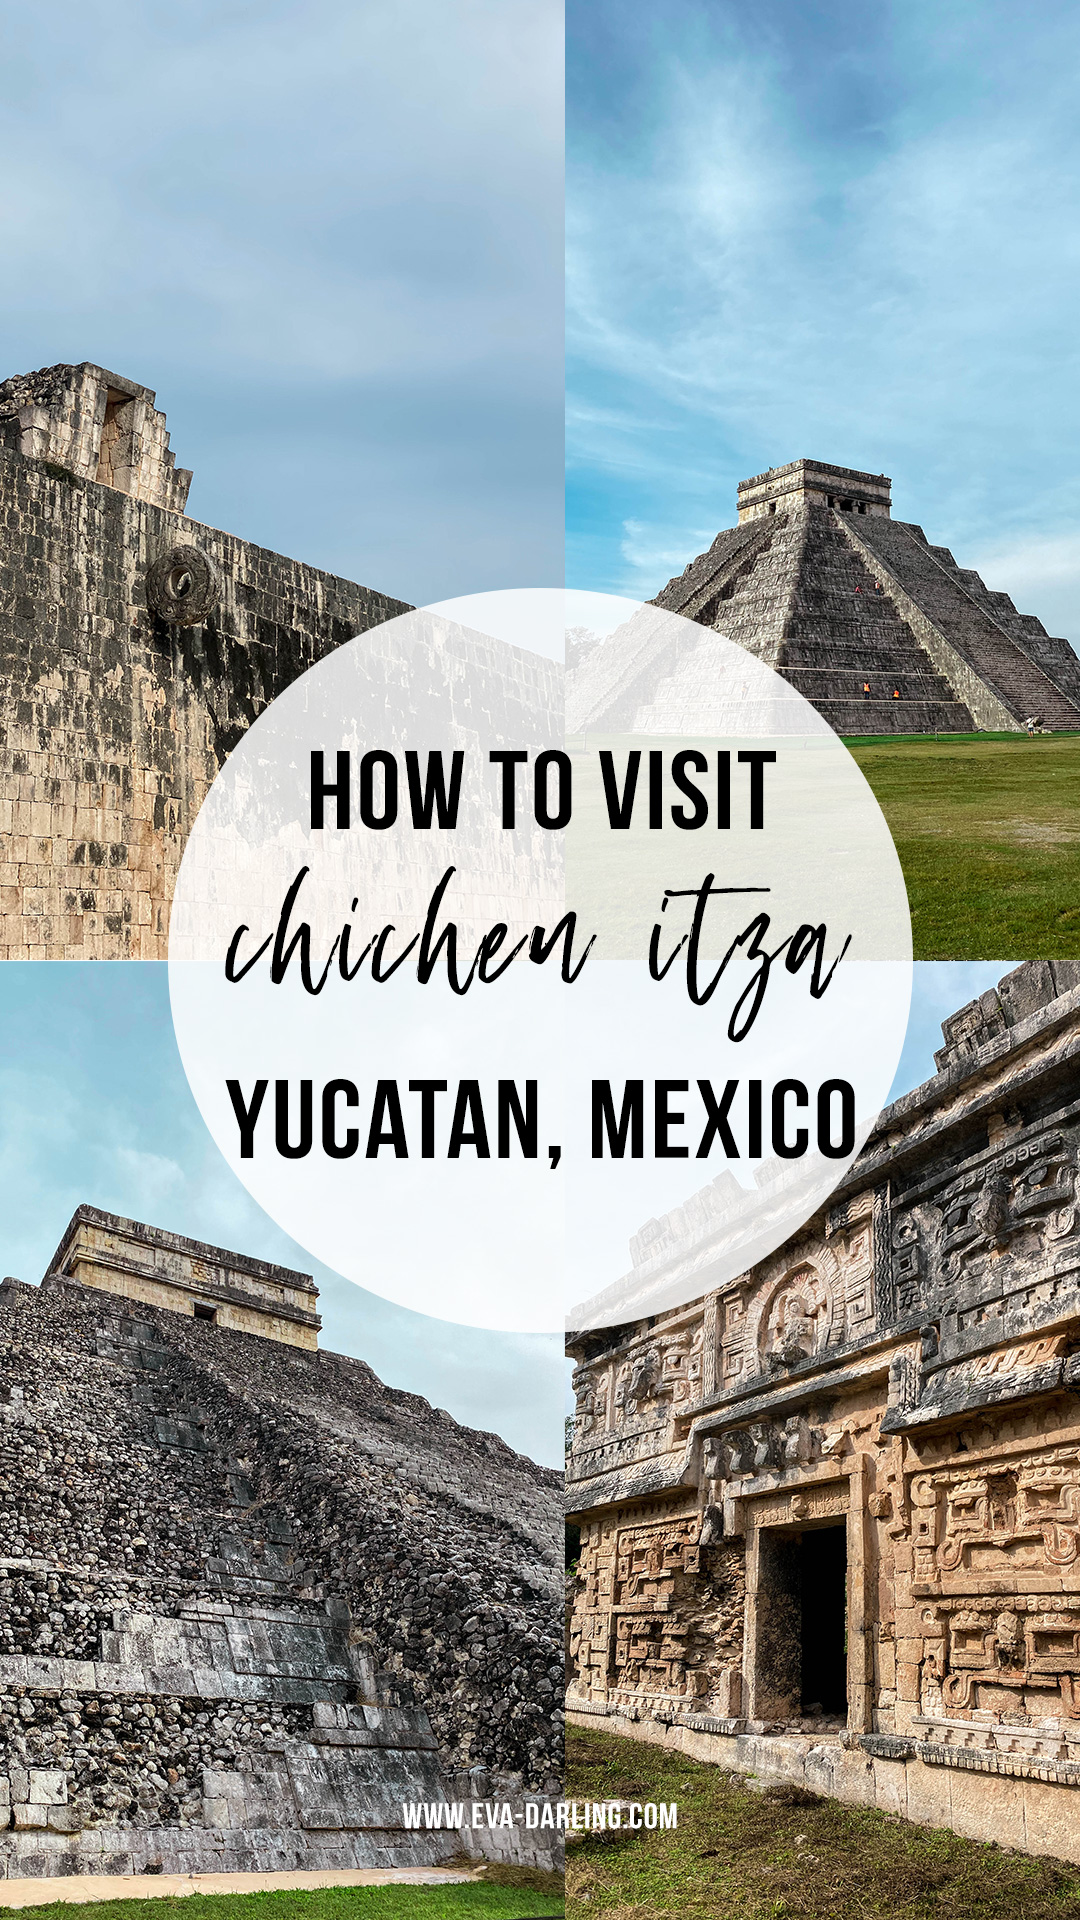 how to visit chichen itza mayan ruins yucatan mexico el castillo temple of kukulkan la iglesia nunery monastery great ball court mayan soccer game osario temple temple of the high priest mayan relief carving